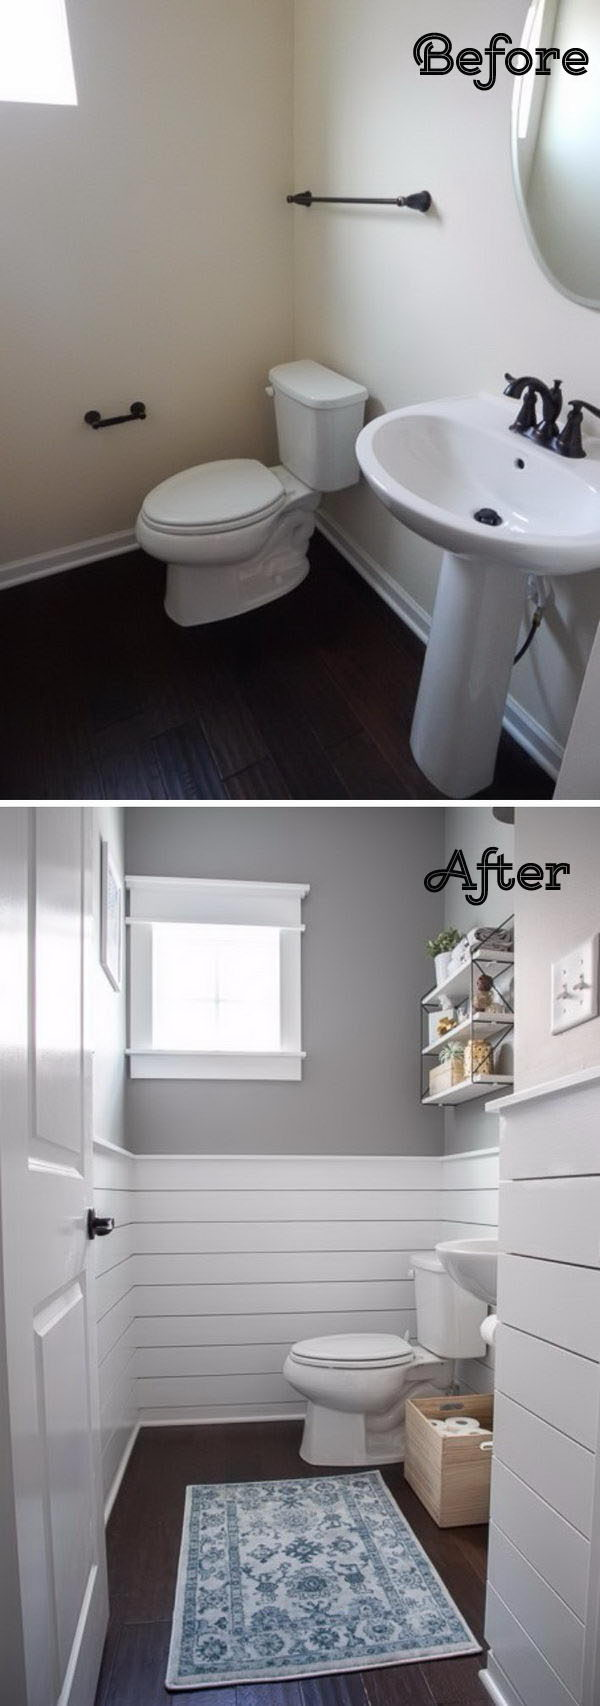 Update A Plain Bathroom By Making A Crisp Contrast Between The White Shiplap And The Light Gray Walls.